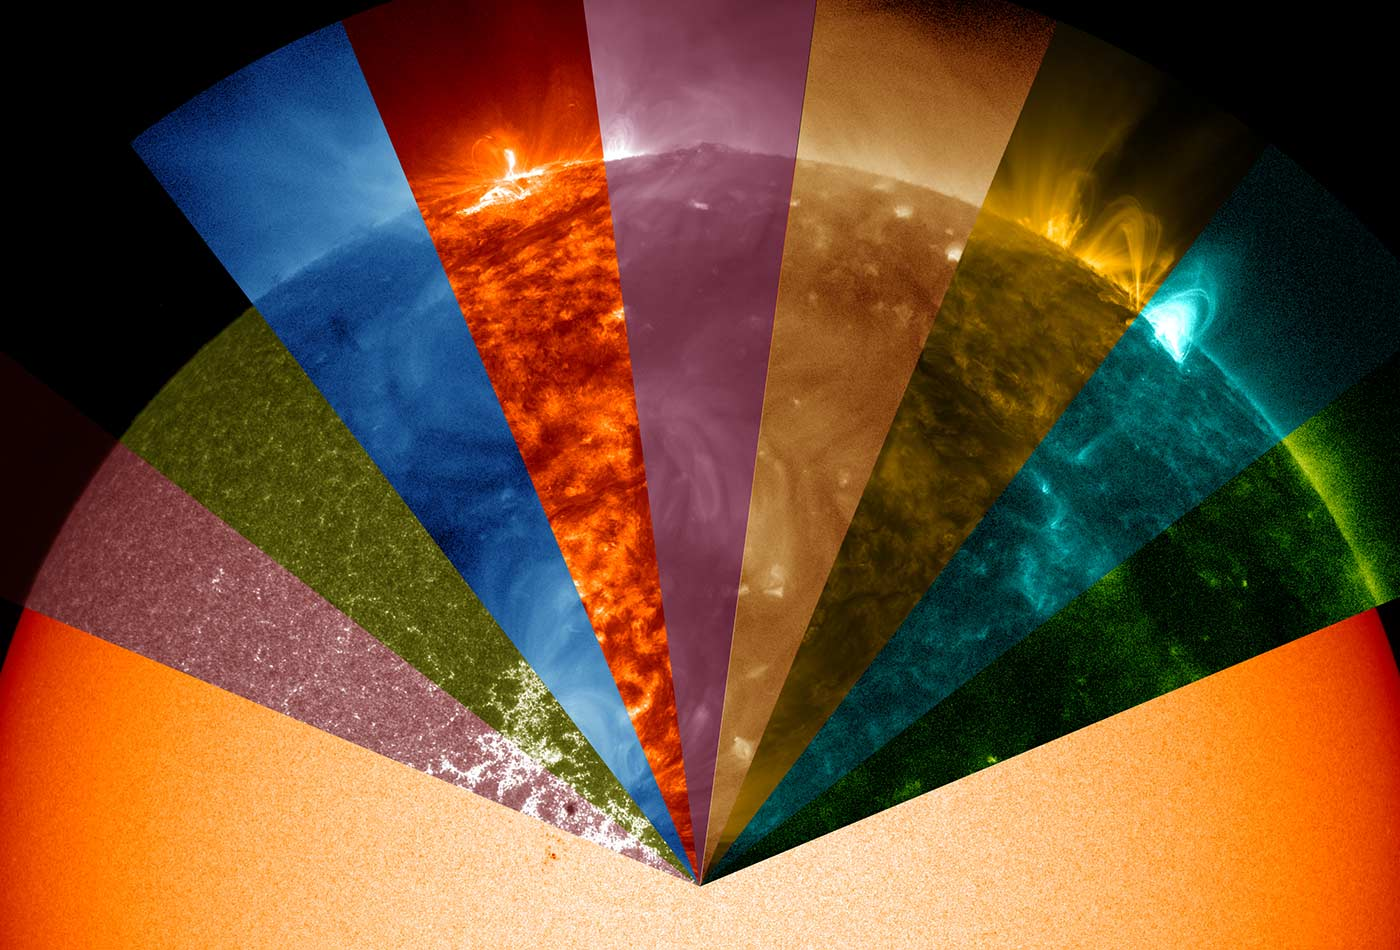 NASA's Solar Dynamics Observatory showing the wide range of the Sun's wavelengths.